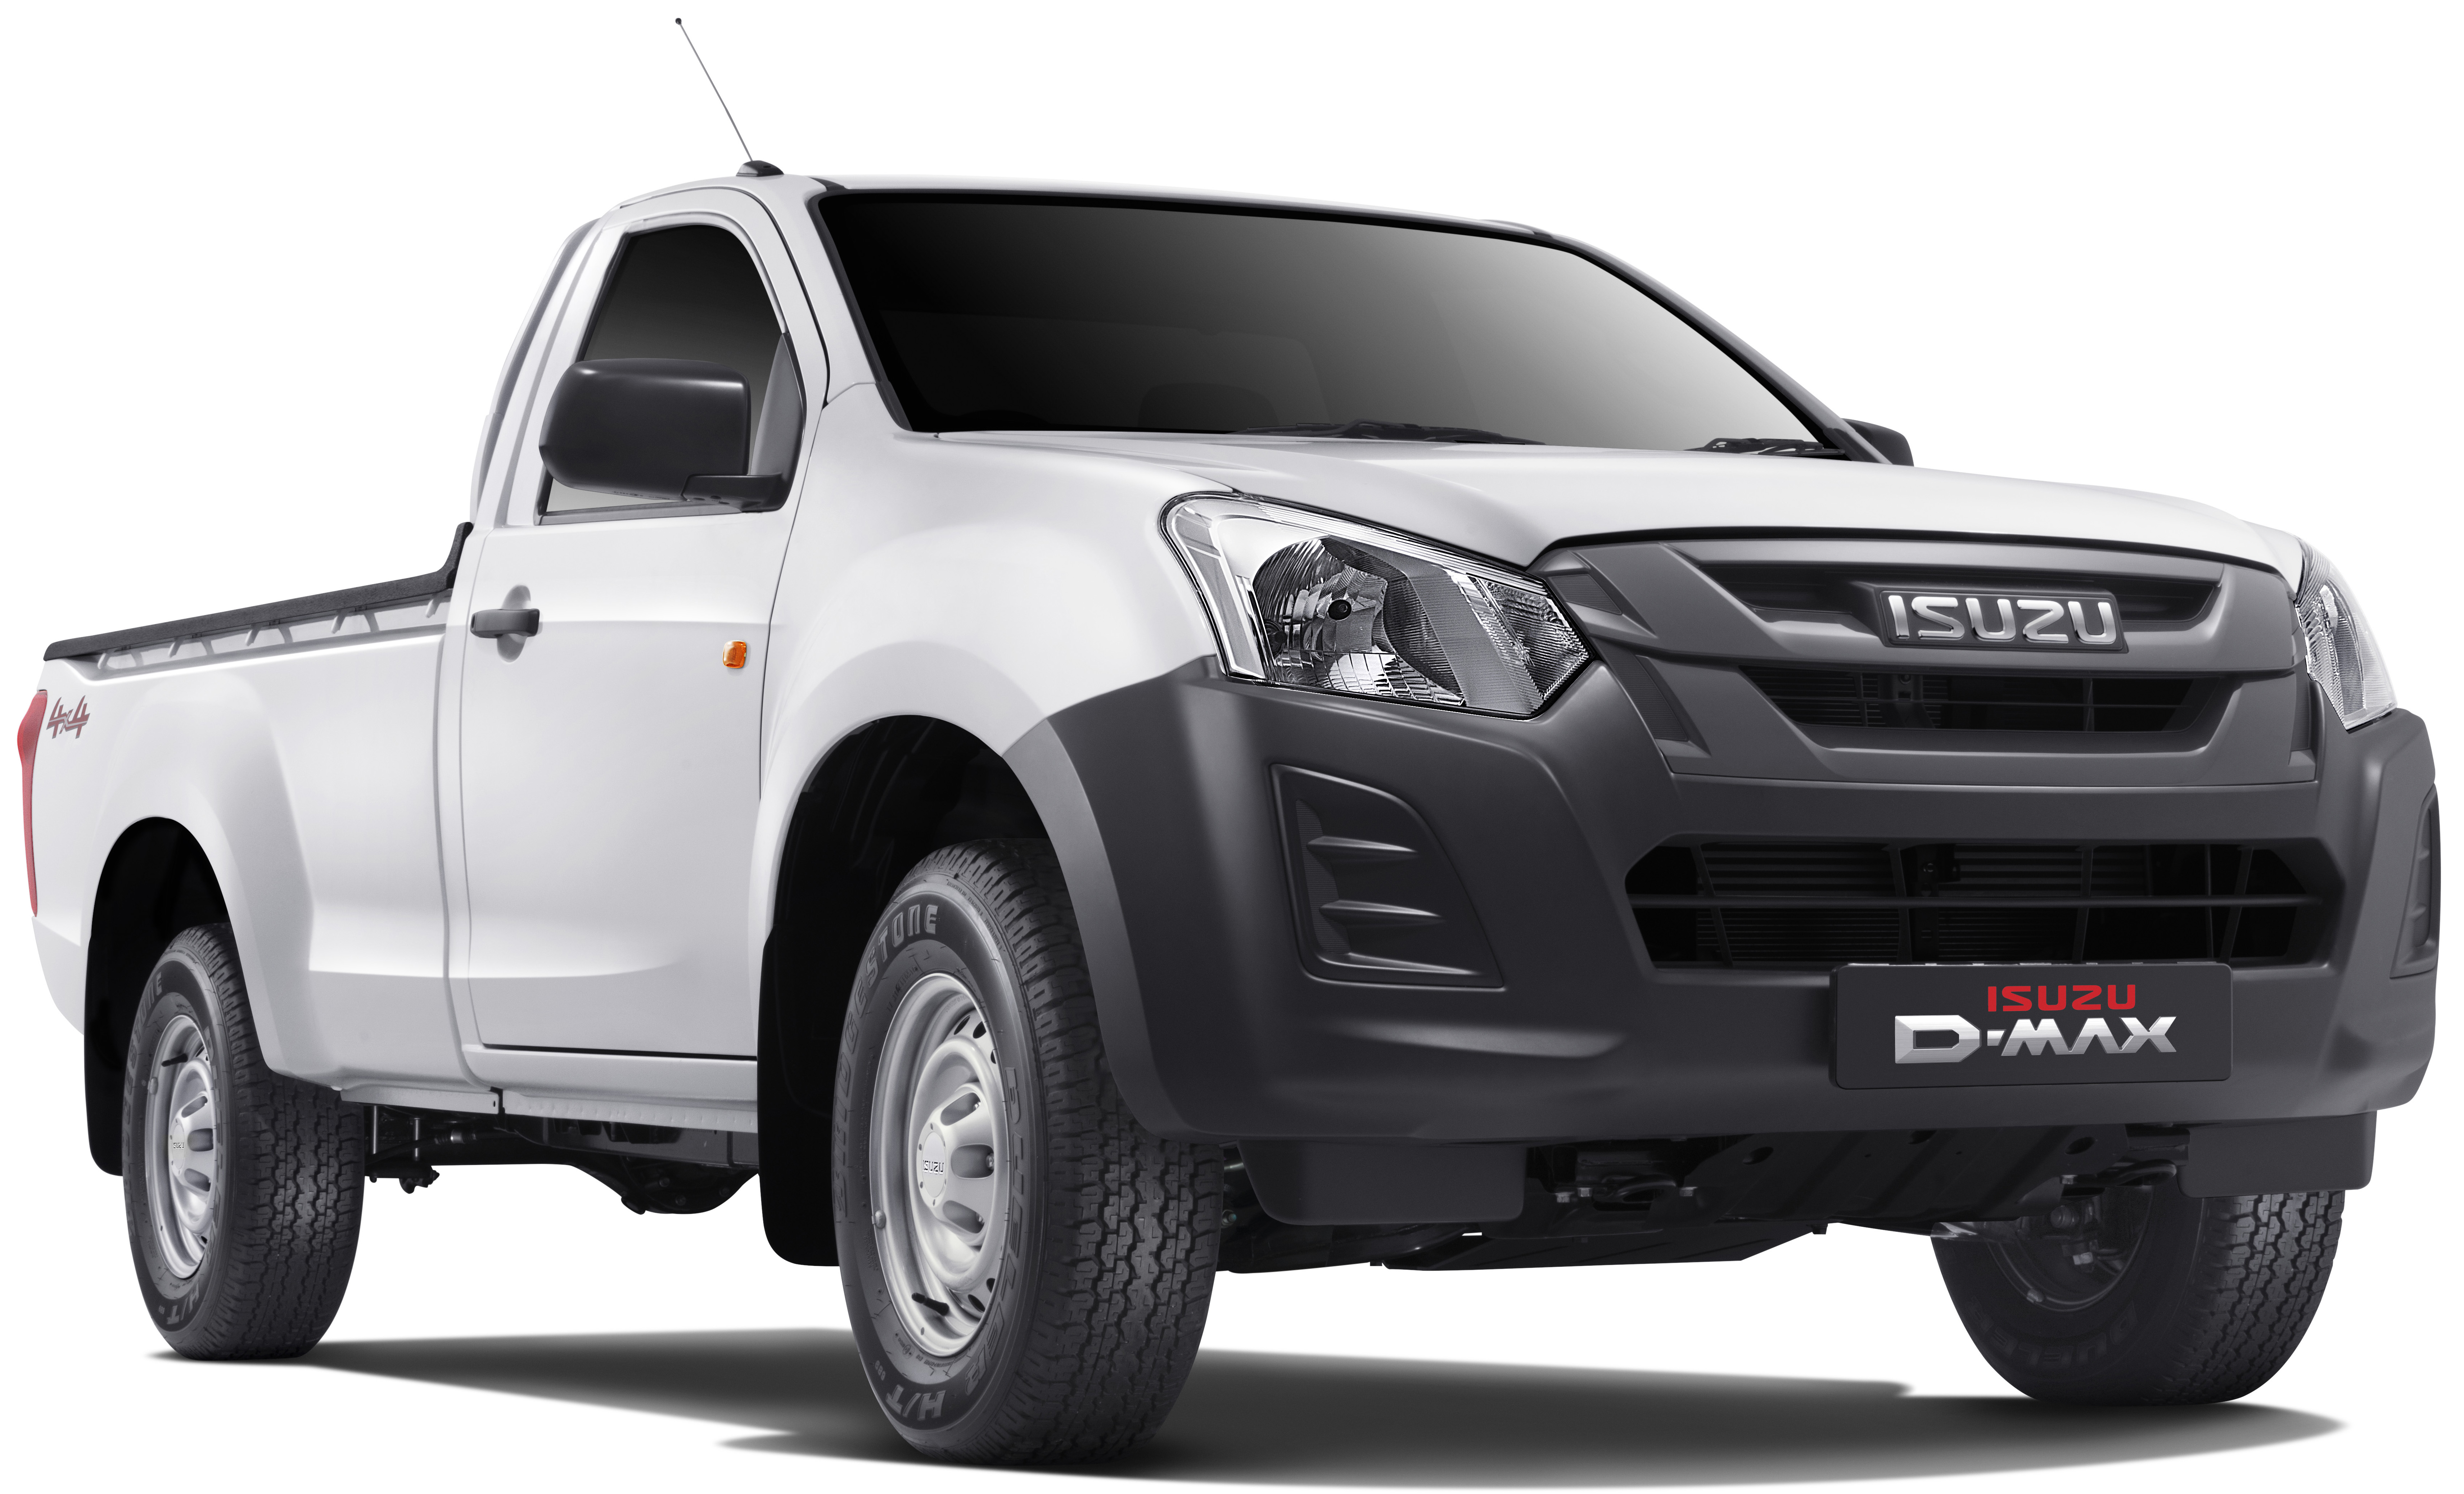 Isuzu D-Max 3.0L Single Cab launched in Malaysia - 177 PS and 380 ...